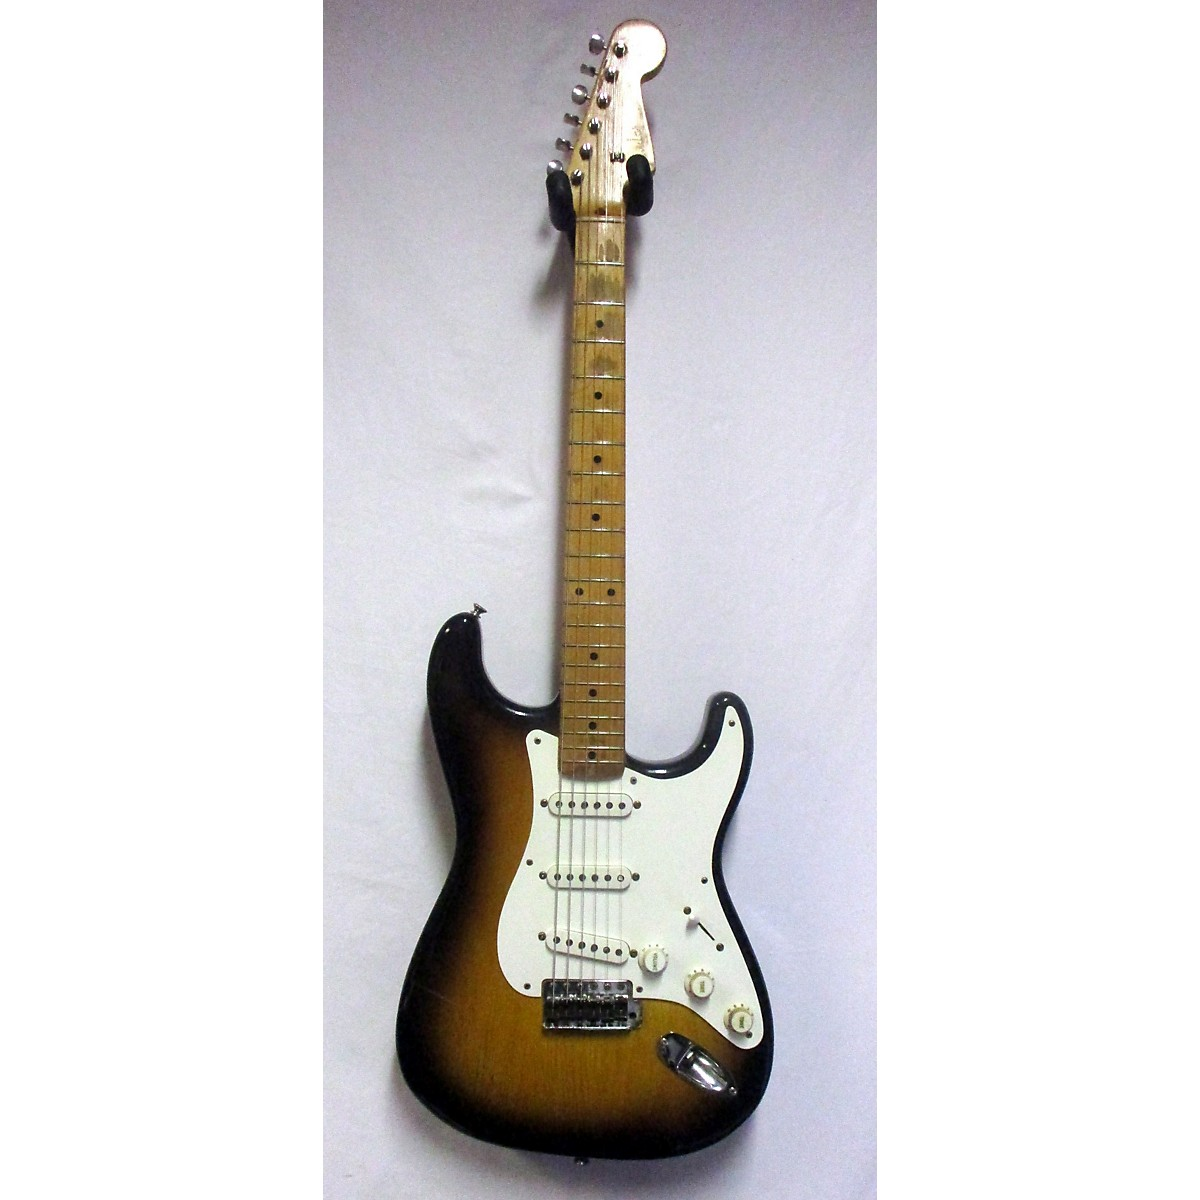 Fender 1958 Stratocaster Solid Body Electric Guitar